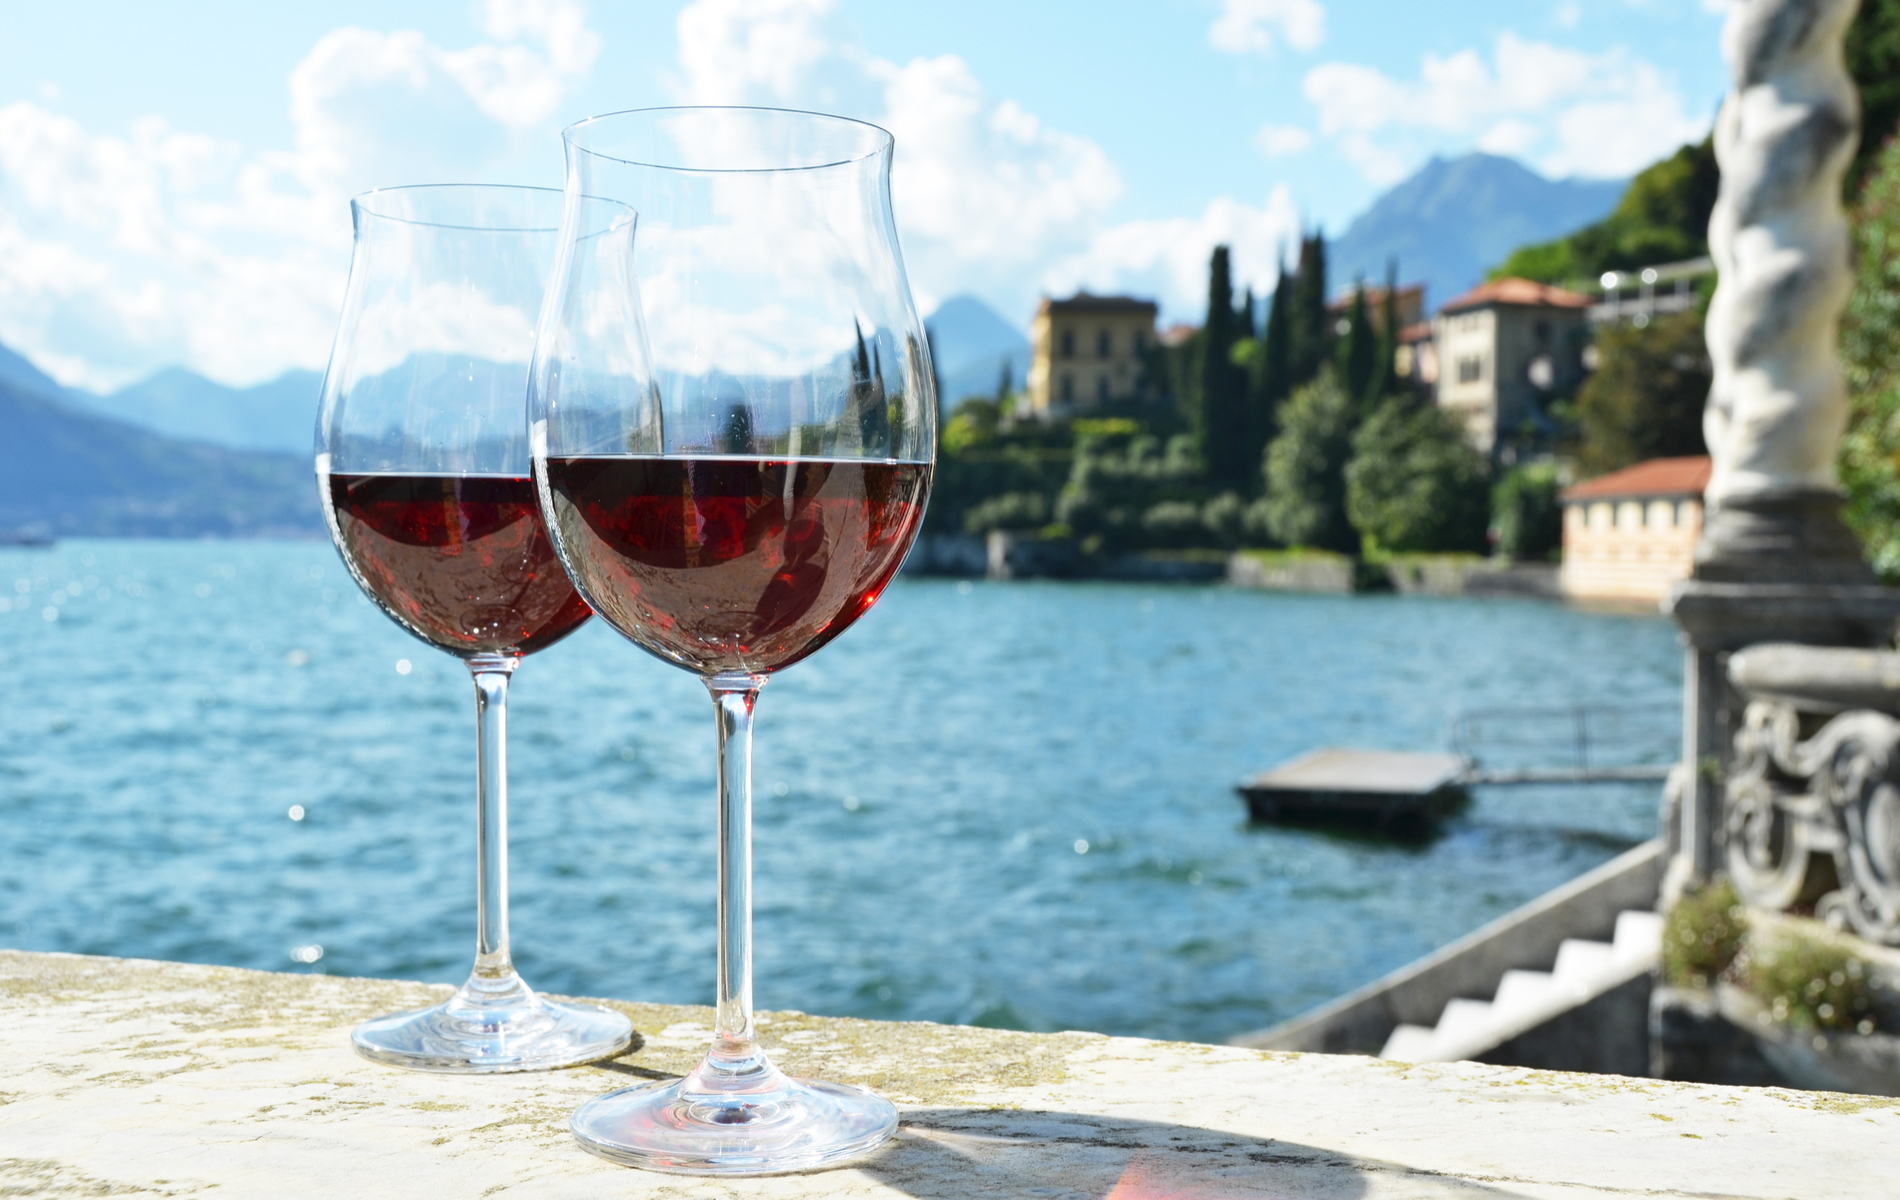 Two wineglasses at lake Como, Italy